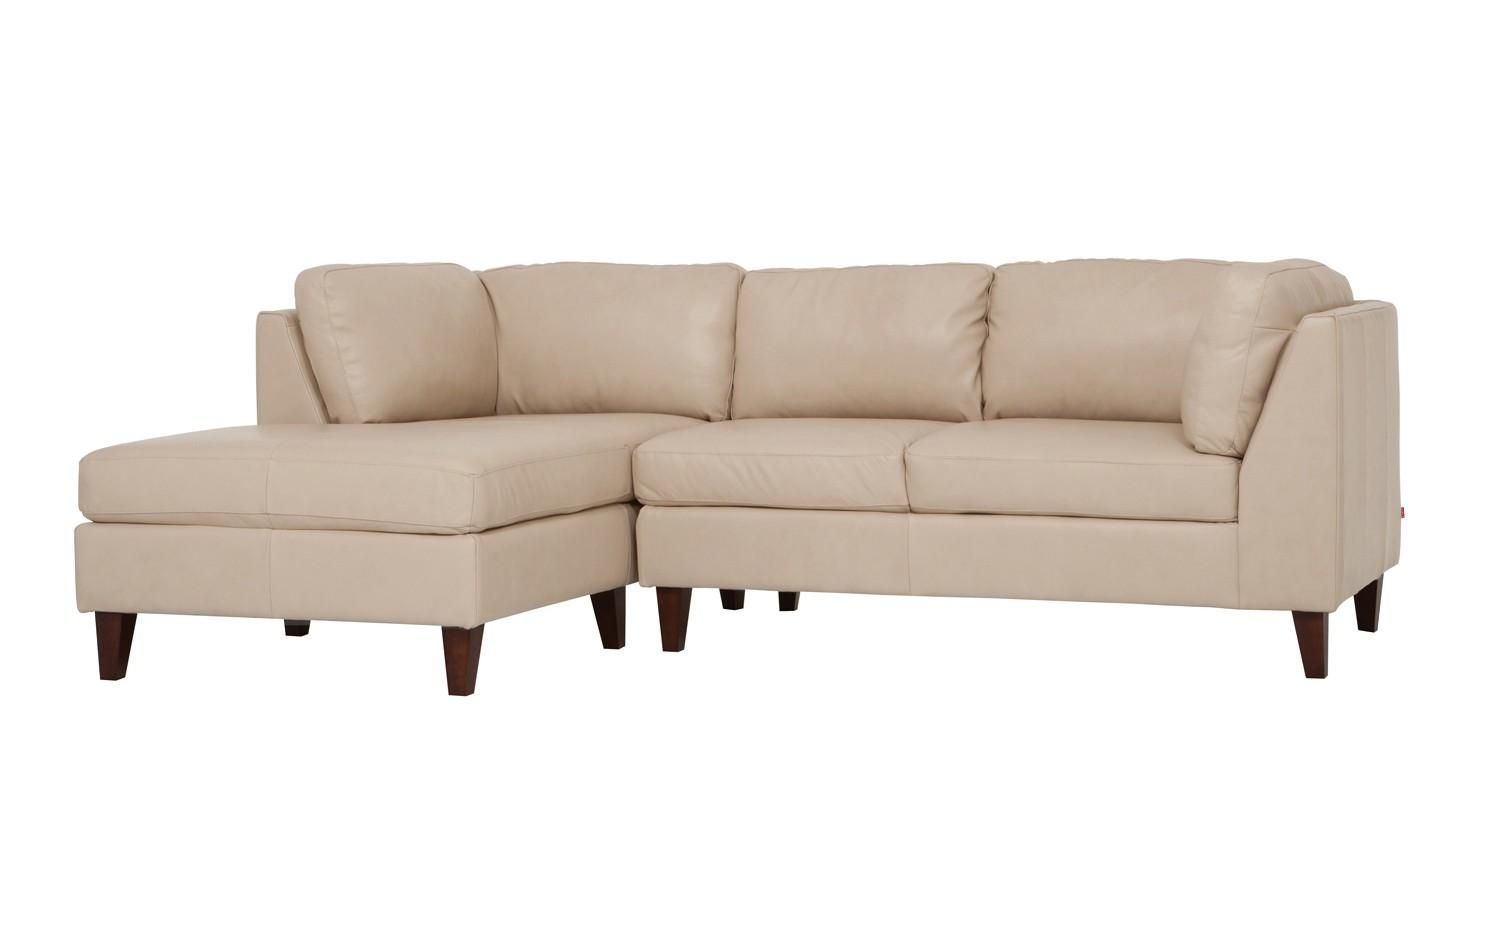 Salema Leather 2 Piece Sectional Sofa With Chaise | Viesso Intended For Sectional Sofa With 2 Chaises (Image 17 of 20)